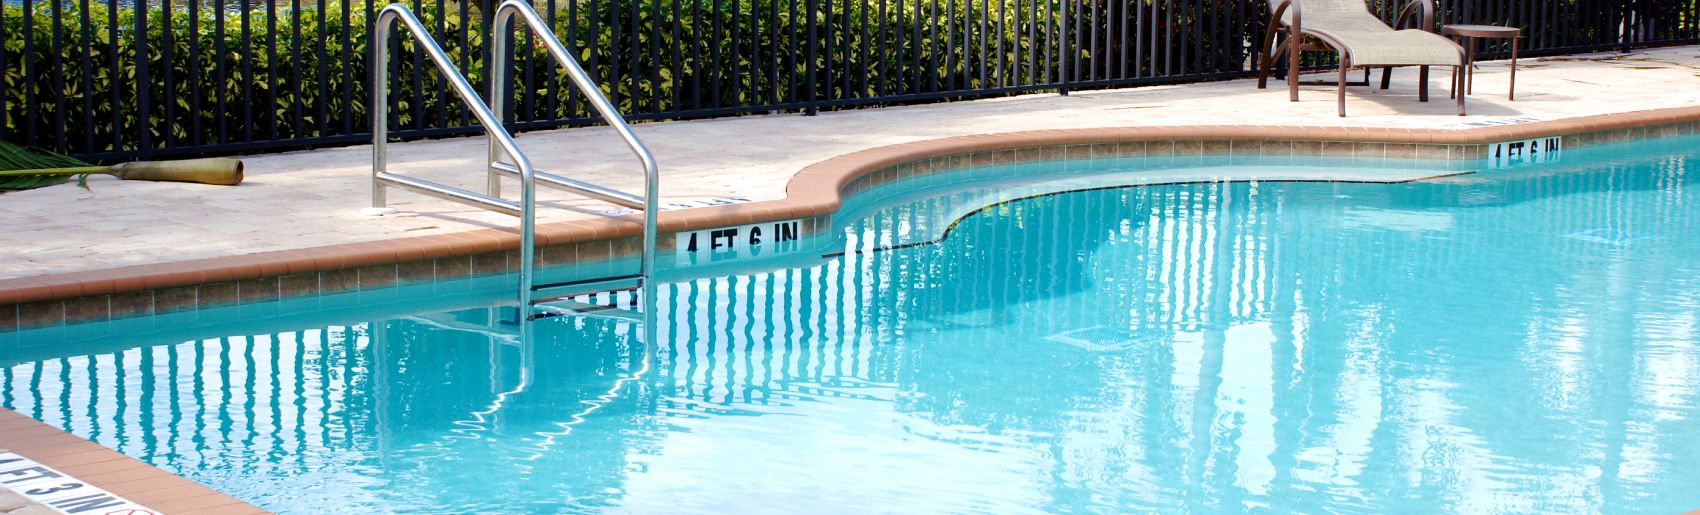 Enhance Your Property With Quality Pool Lighting & Best Pool Lighting Installations in Birmingham